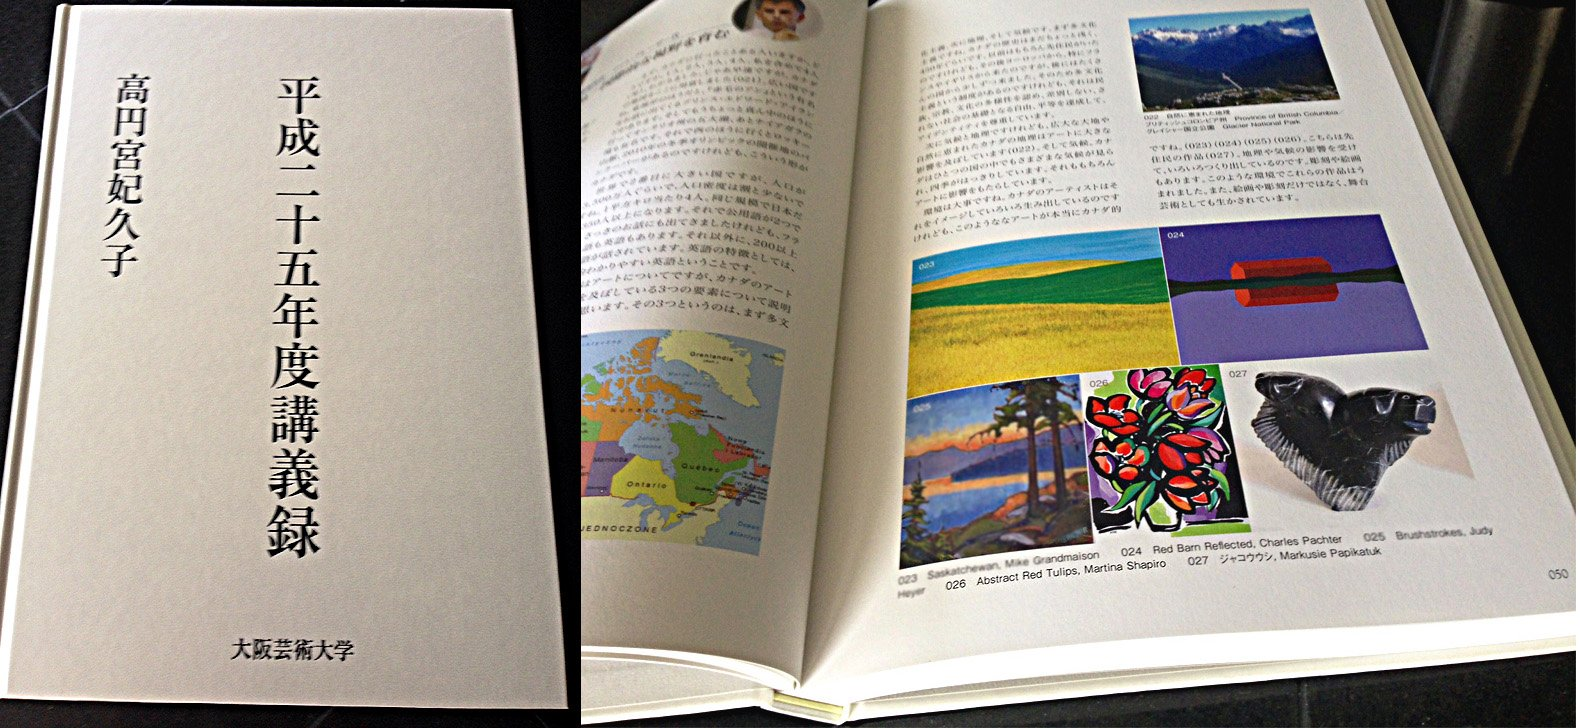 artist Martina Shapiro painting featured in the book of HRH Princess Takamado of Japan.